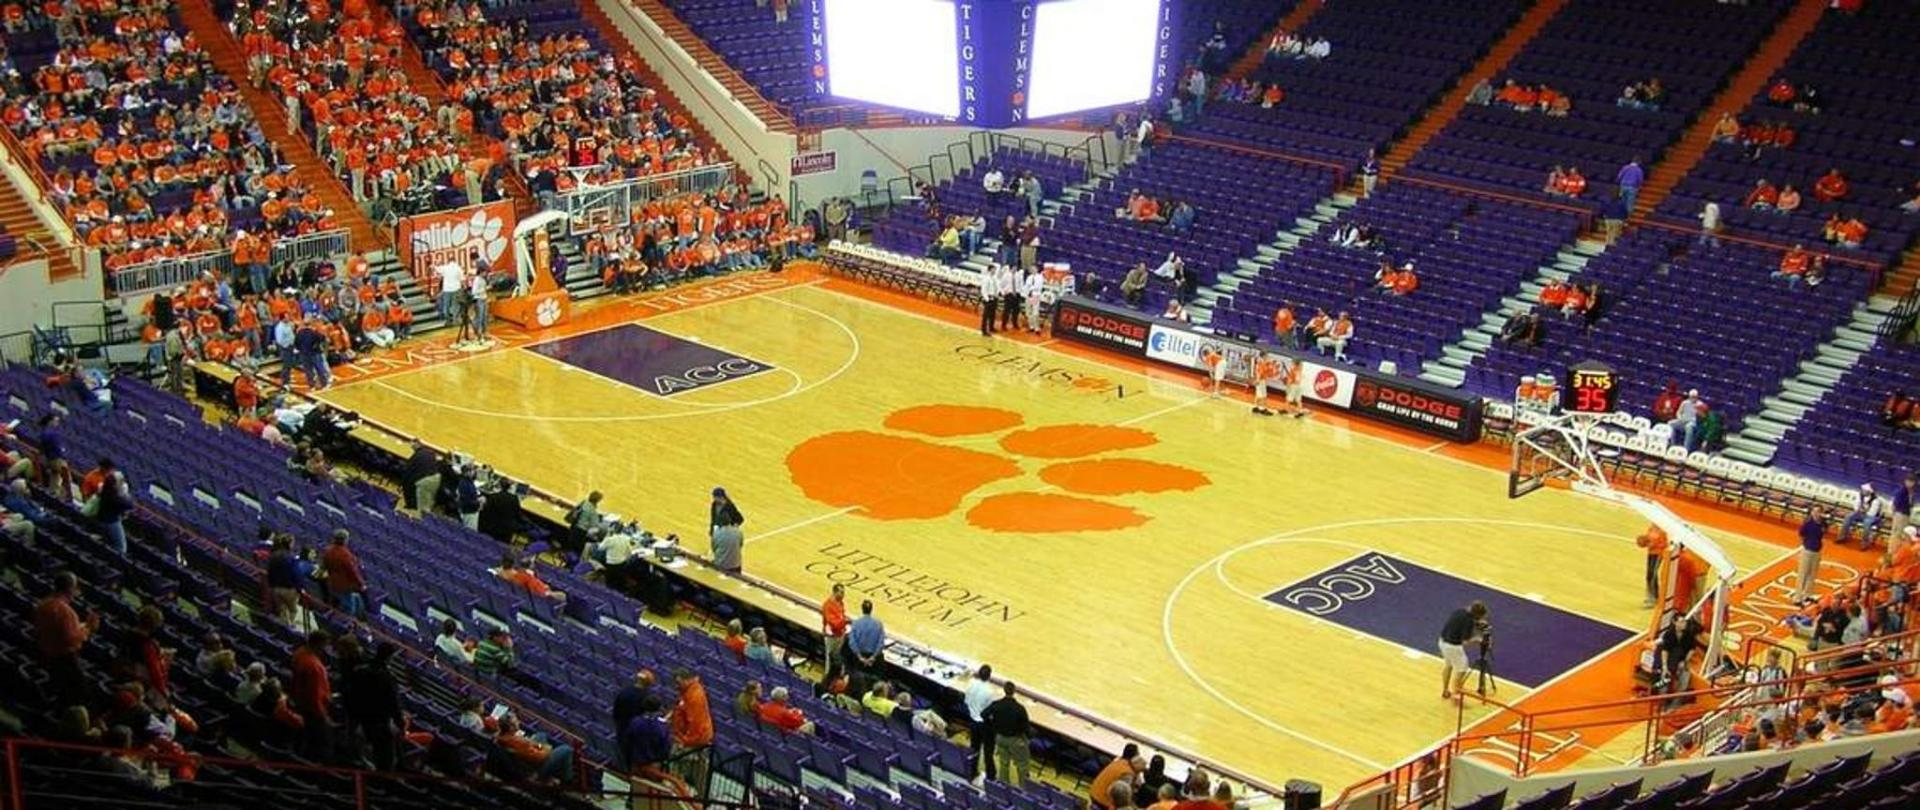 littlejohncoliseum-from-inside.jpg.1140x481_default.jpg